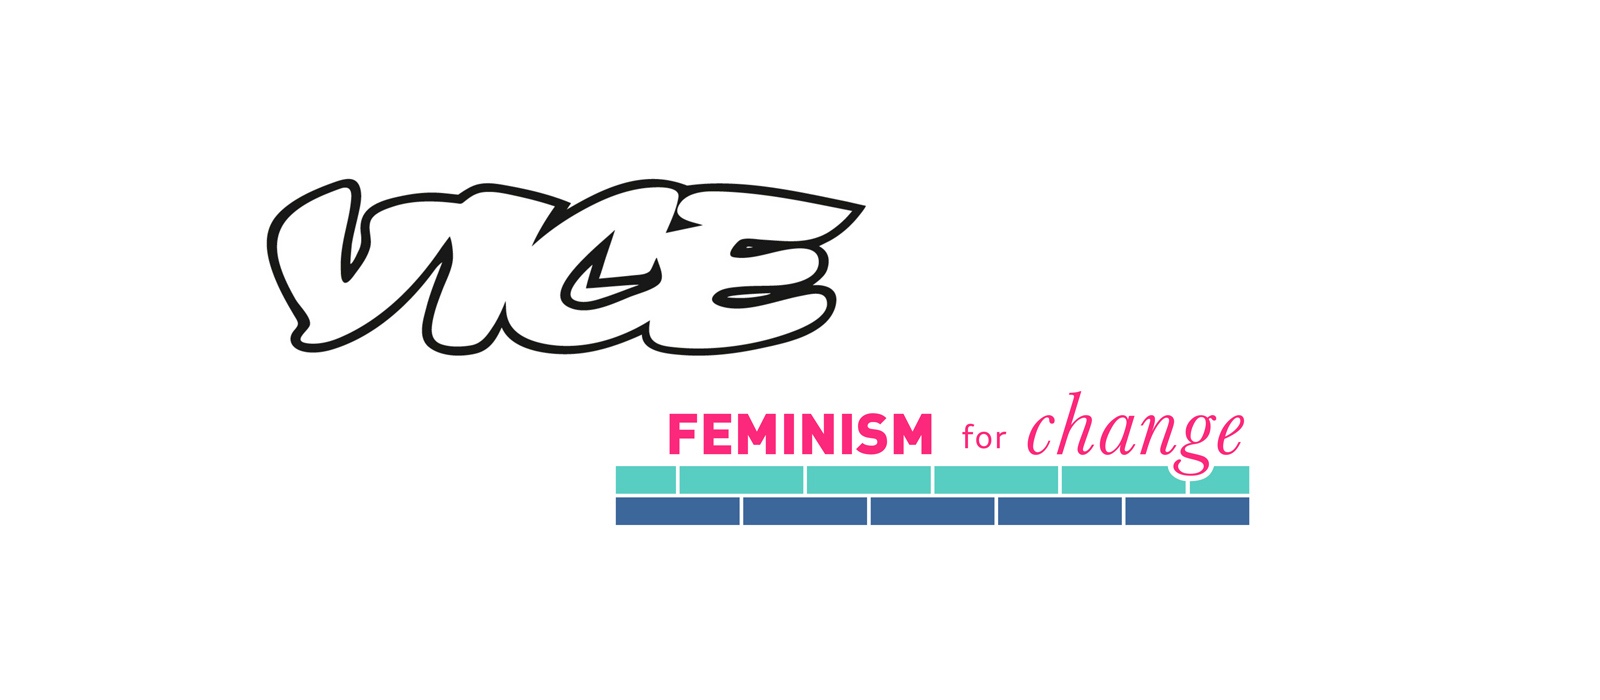 VICE magazine features Feminism for Change